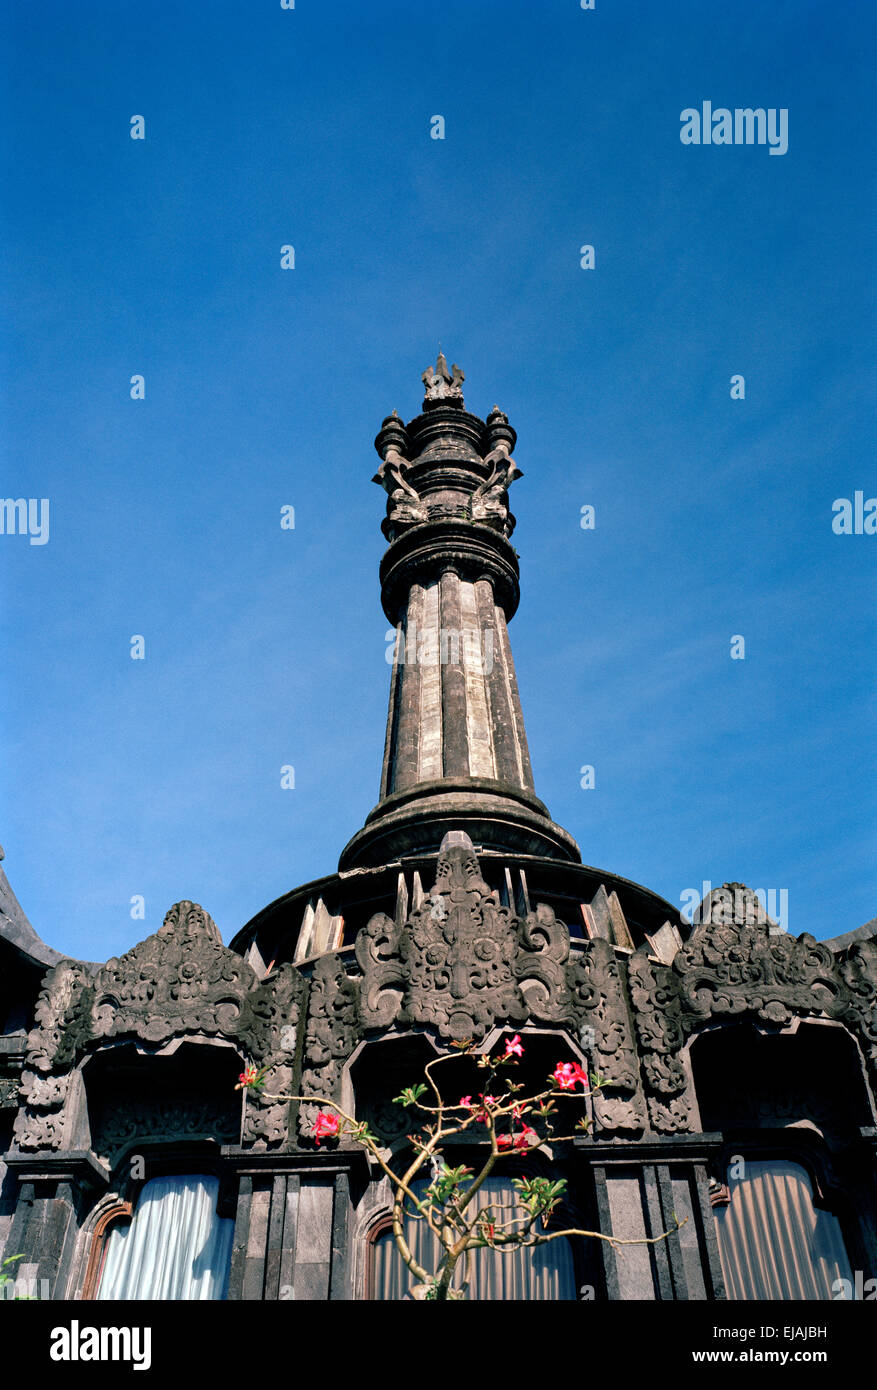 Travel Photography - The Bajra Sandhi Monument in Denpasar in Bali in Indonesia in Southeast Asia Far East. Architecture - Stock Image